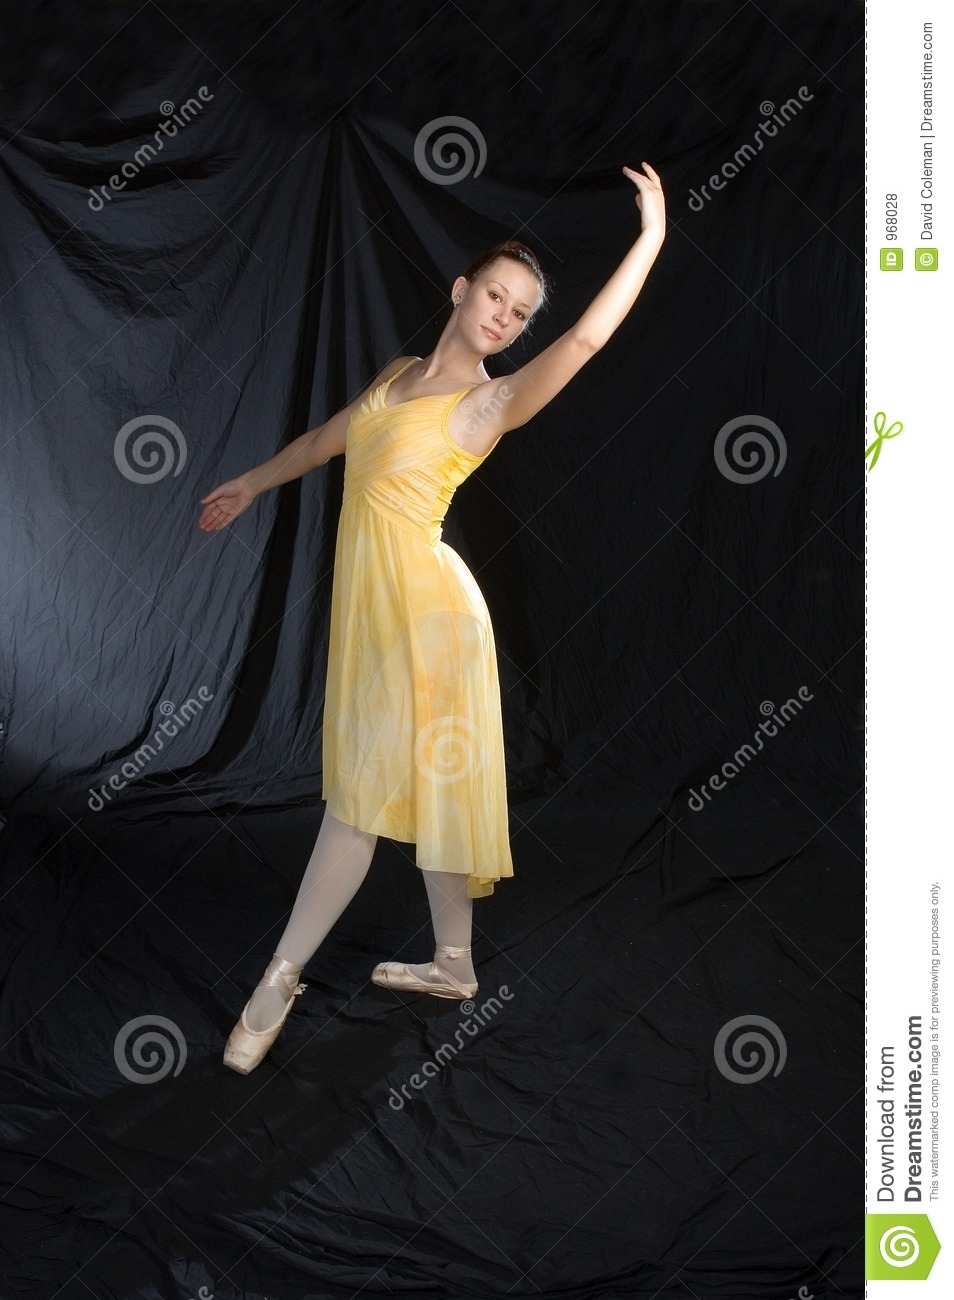 Classical Ballet Pose Royalty Free Stock Photos Image